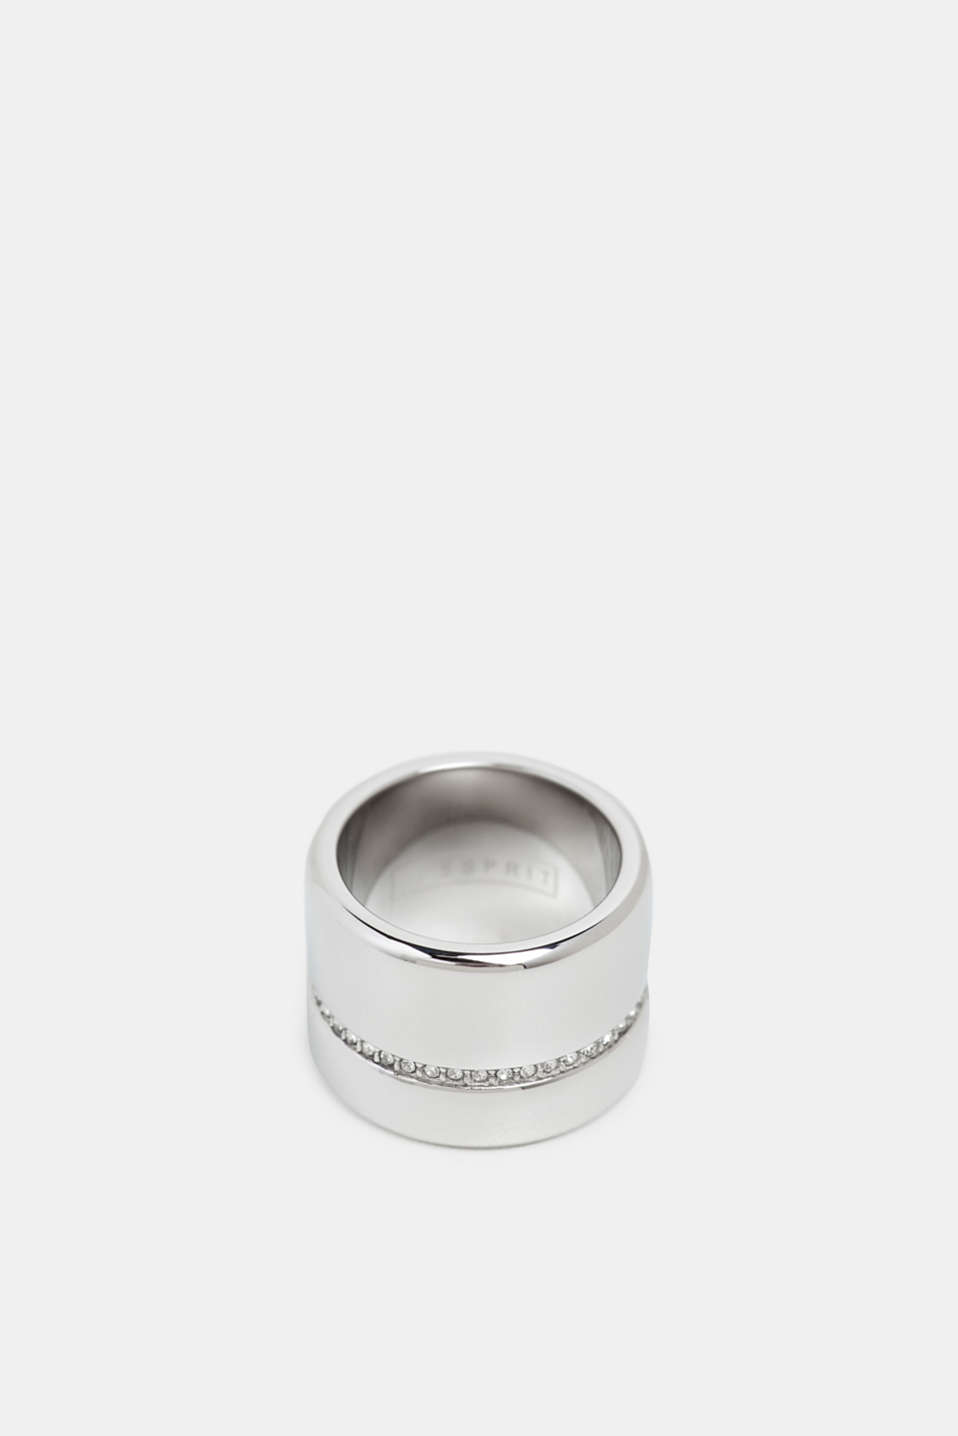 Esprit - Statement ring with a row of zirconia, stainless steel